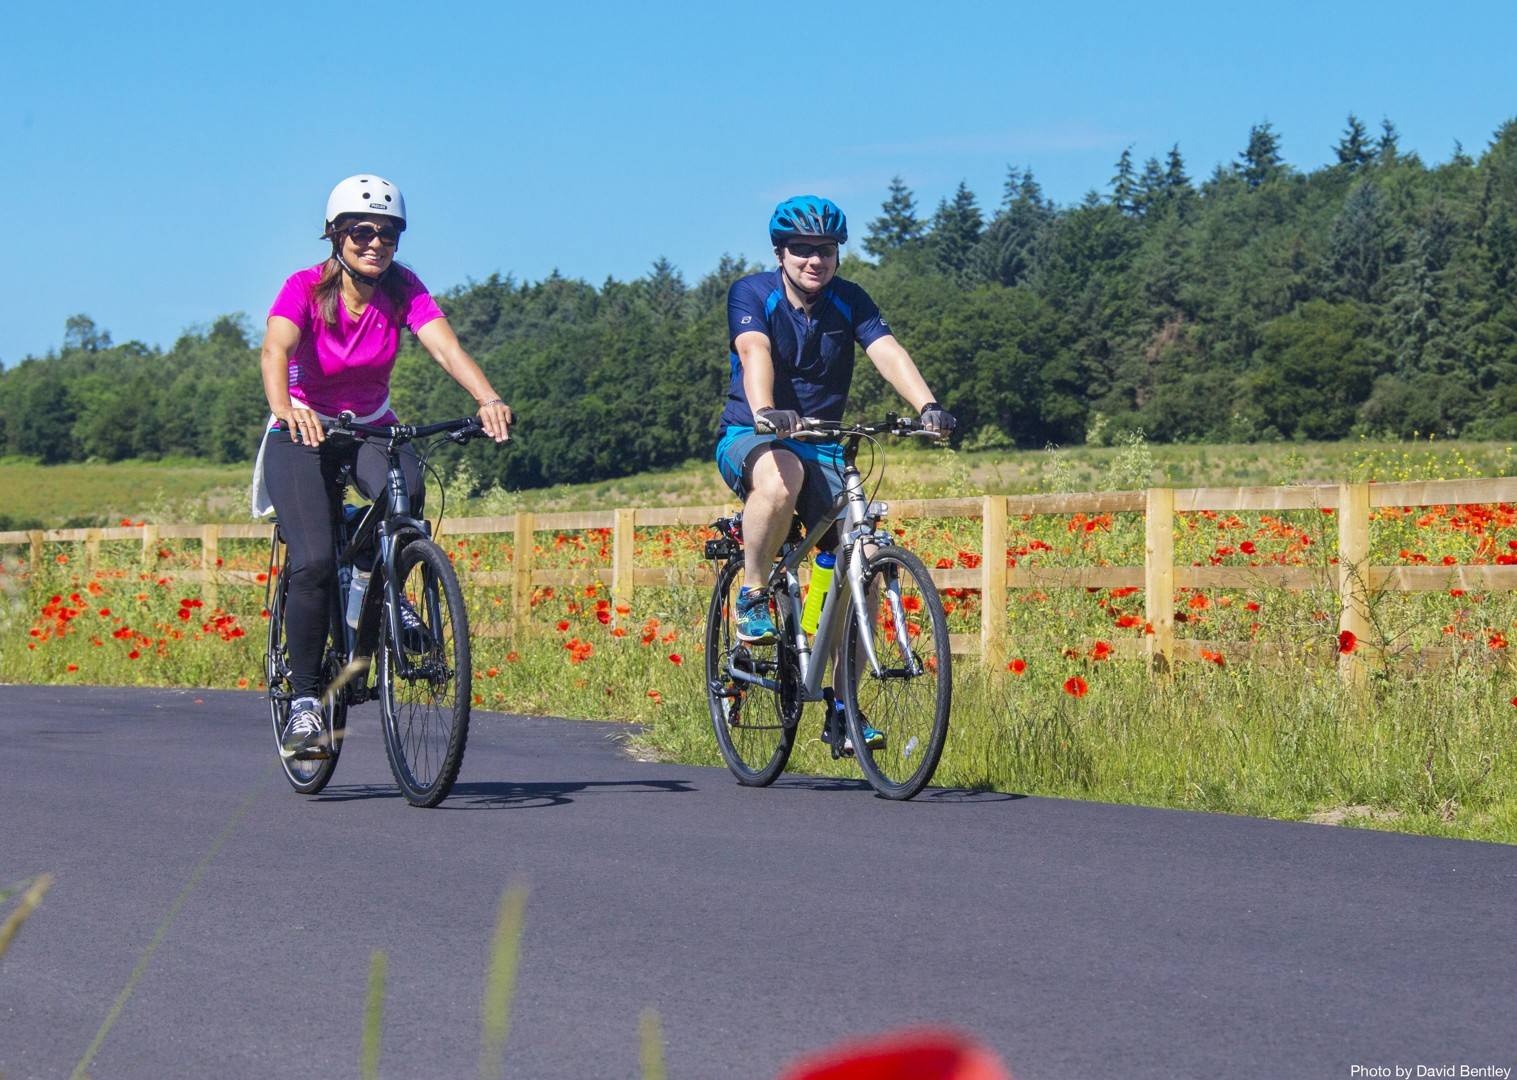 Hadrians-Cycleway-Self-Guided-Leisure-Cycling-Holiday-North-Pennines.jpg - UK - Hadrian's Cycleway - 2 Days Cycling - Self-Guided Leisure Cycling Holiday - Leisure Cycling